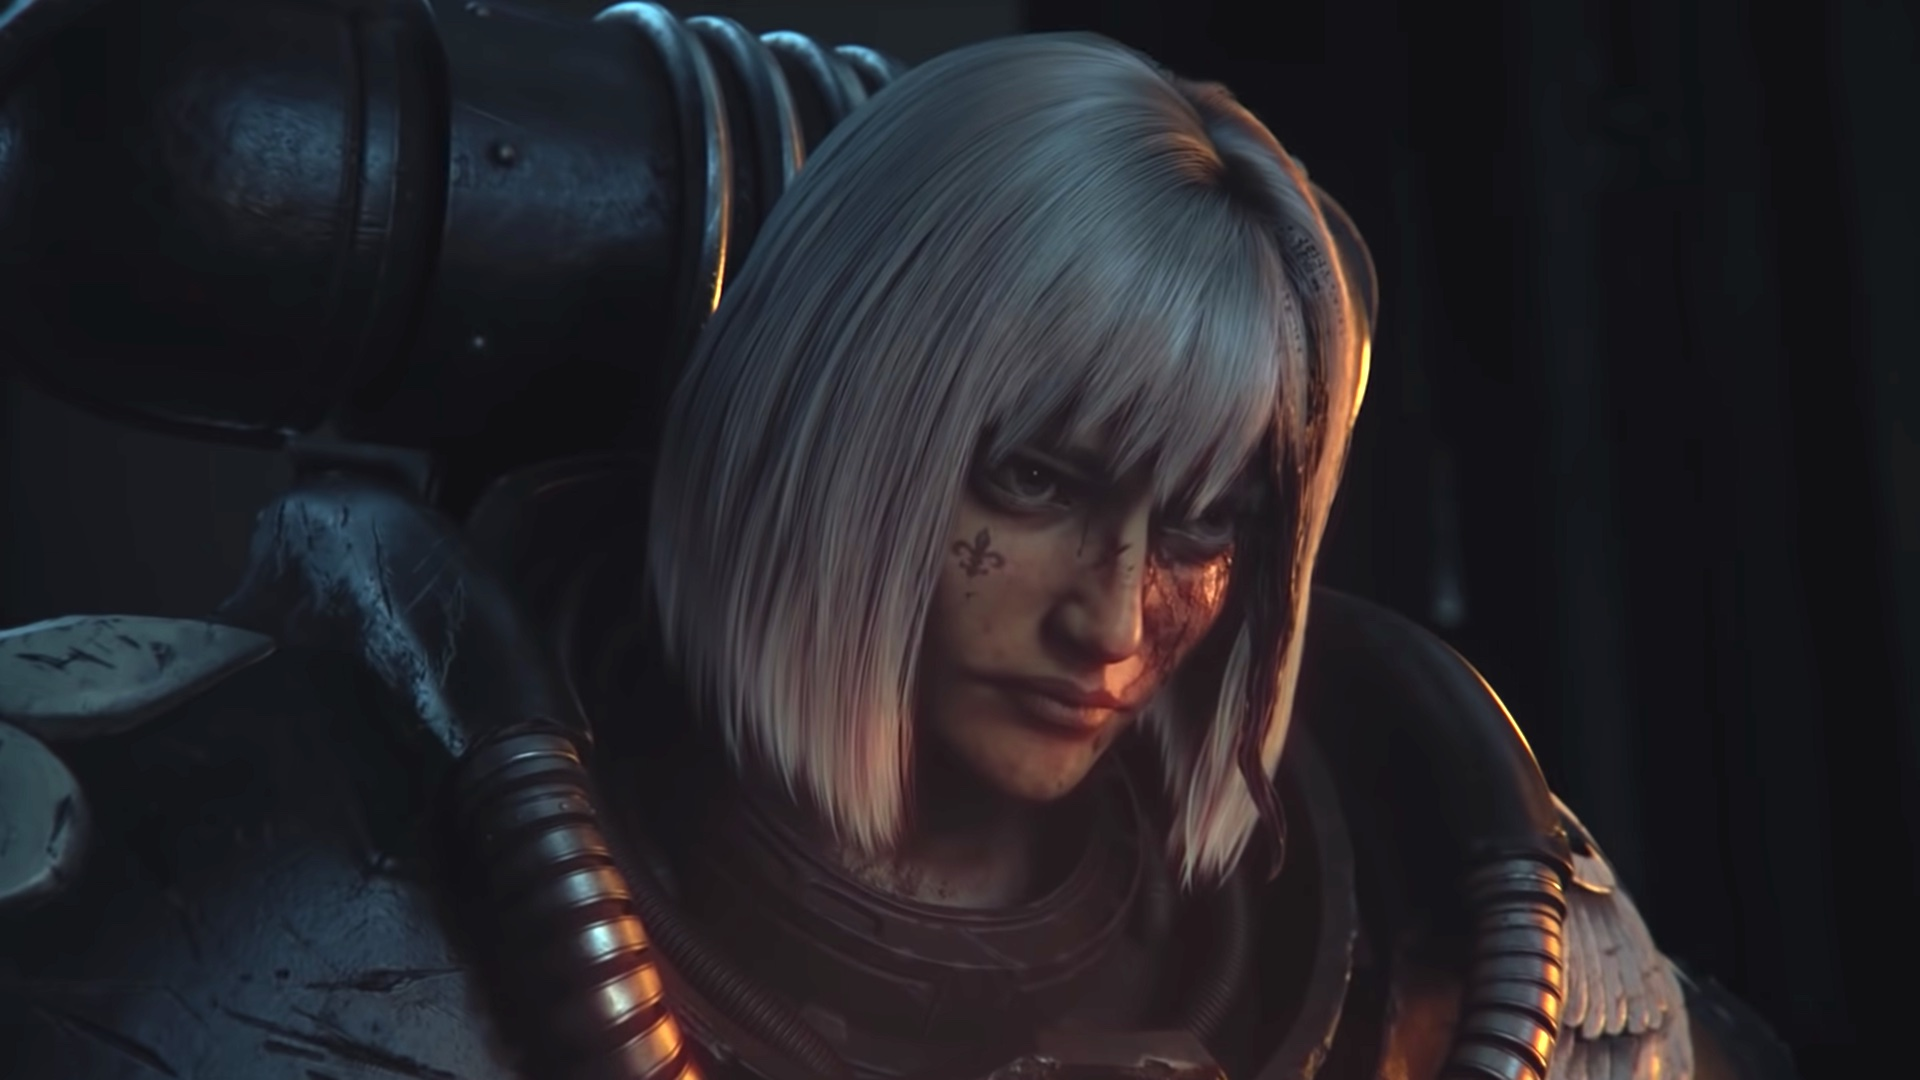 A Sister of Battle from Warhammer 40,000